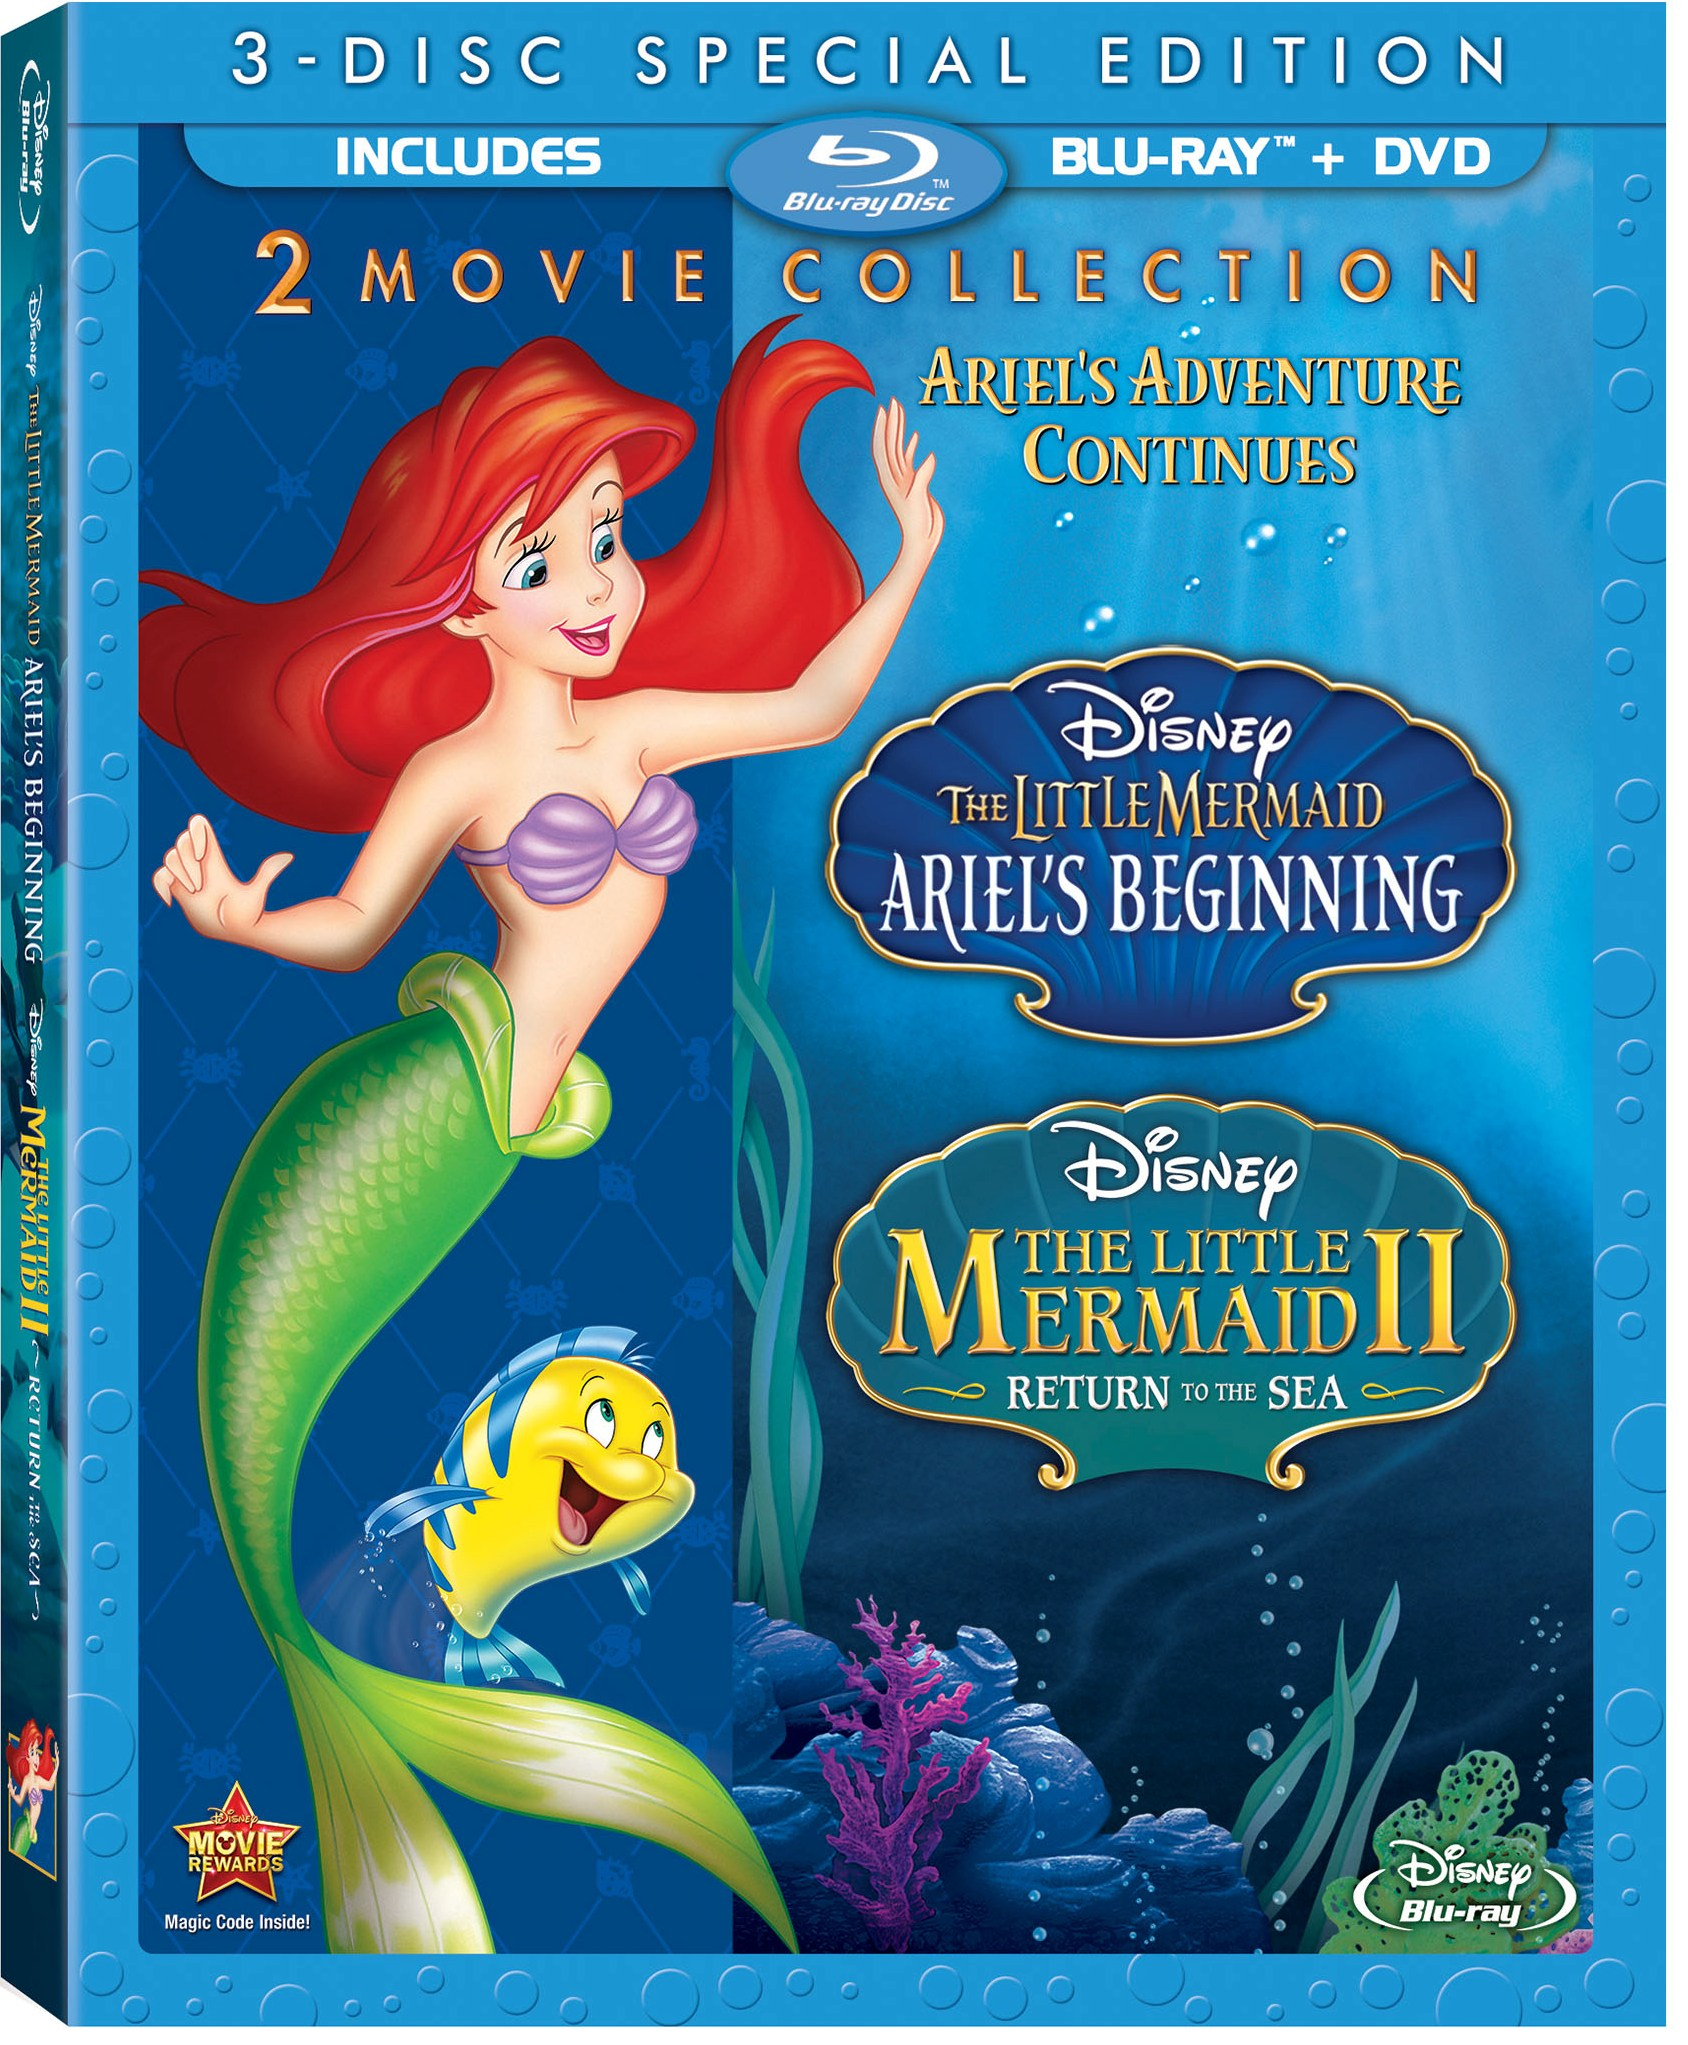 The_Little_Mermaid_II_&_Ariel's_Beginning_2-Movie_Collection-1